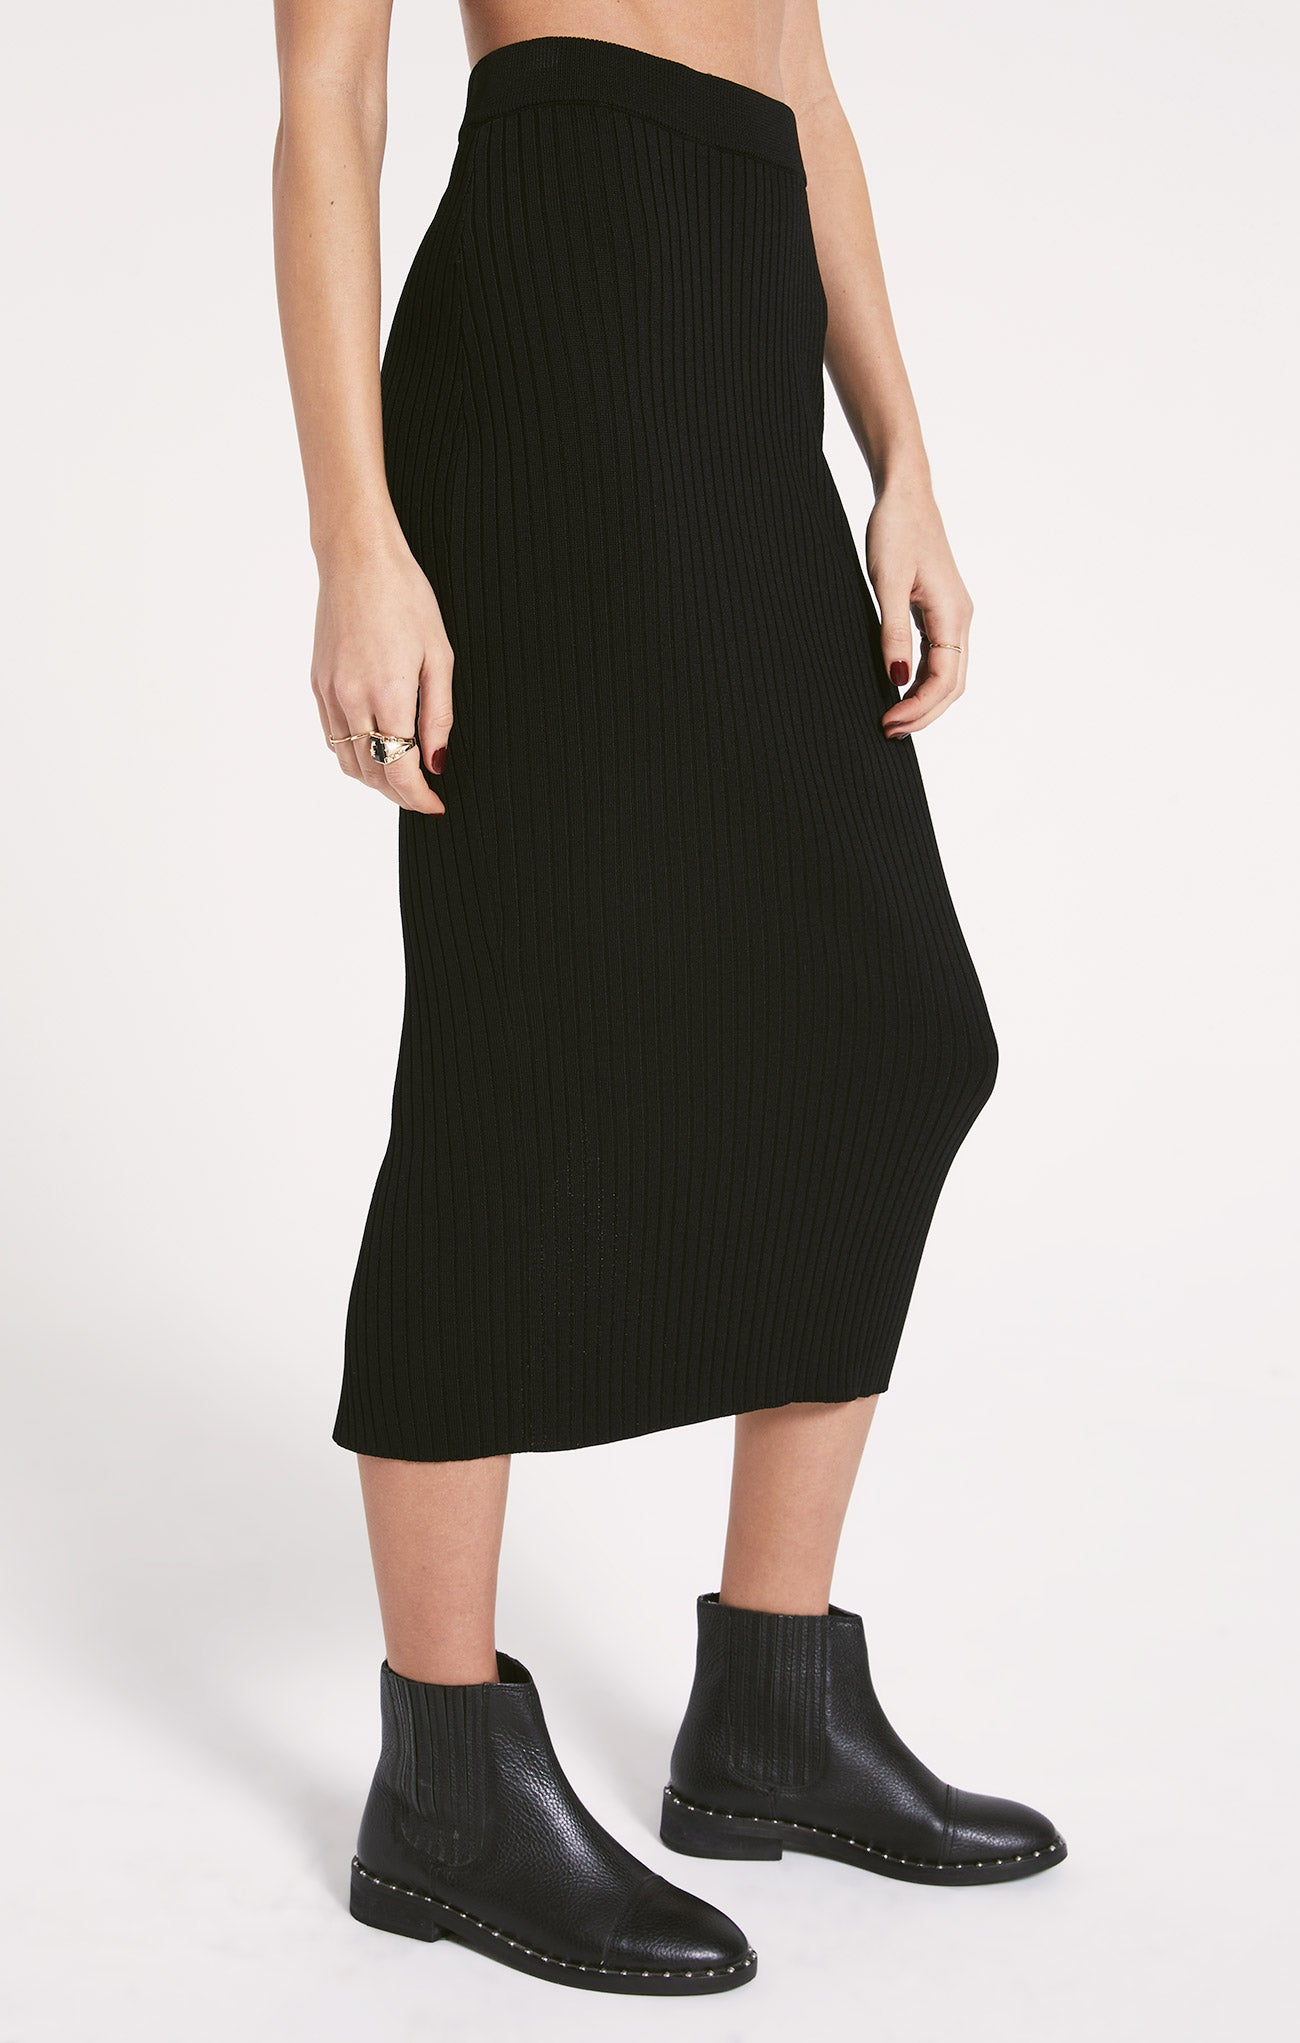 Skirts Les Halles Skirt by Rag Poets Black